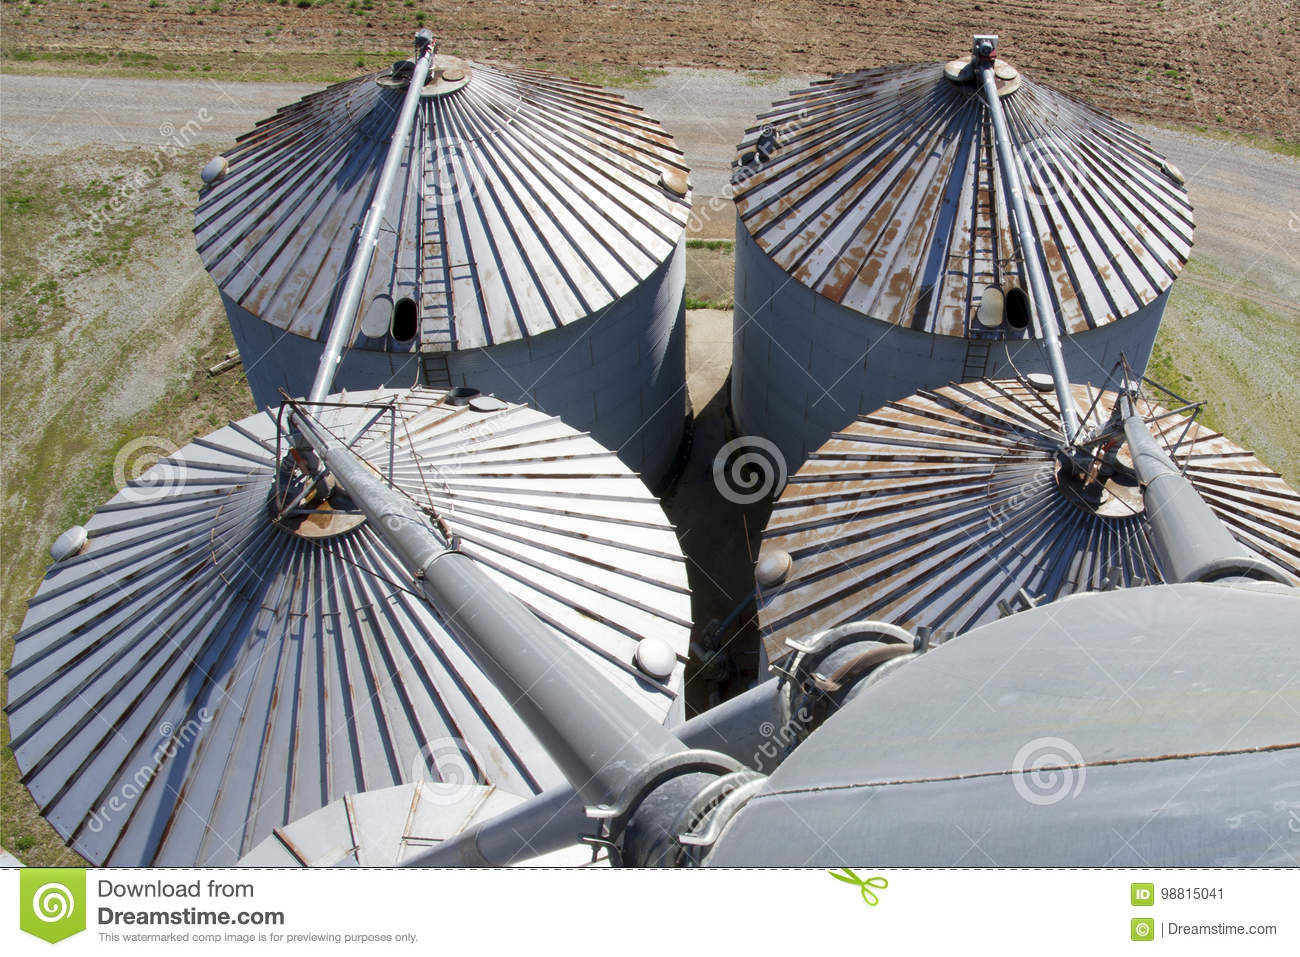 Grain Bin Roofs stock image  Image of silo, auger, bins